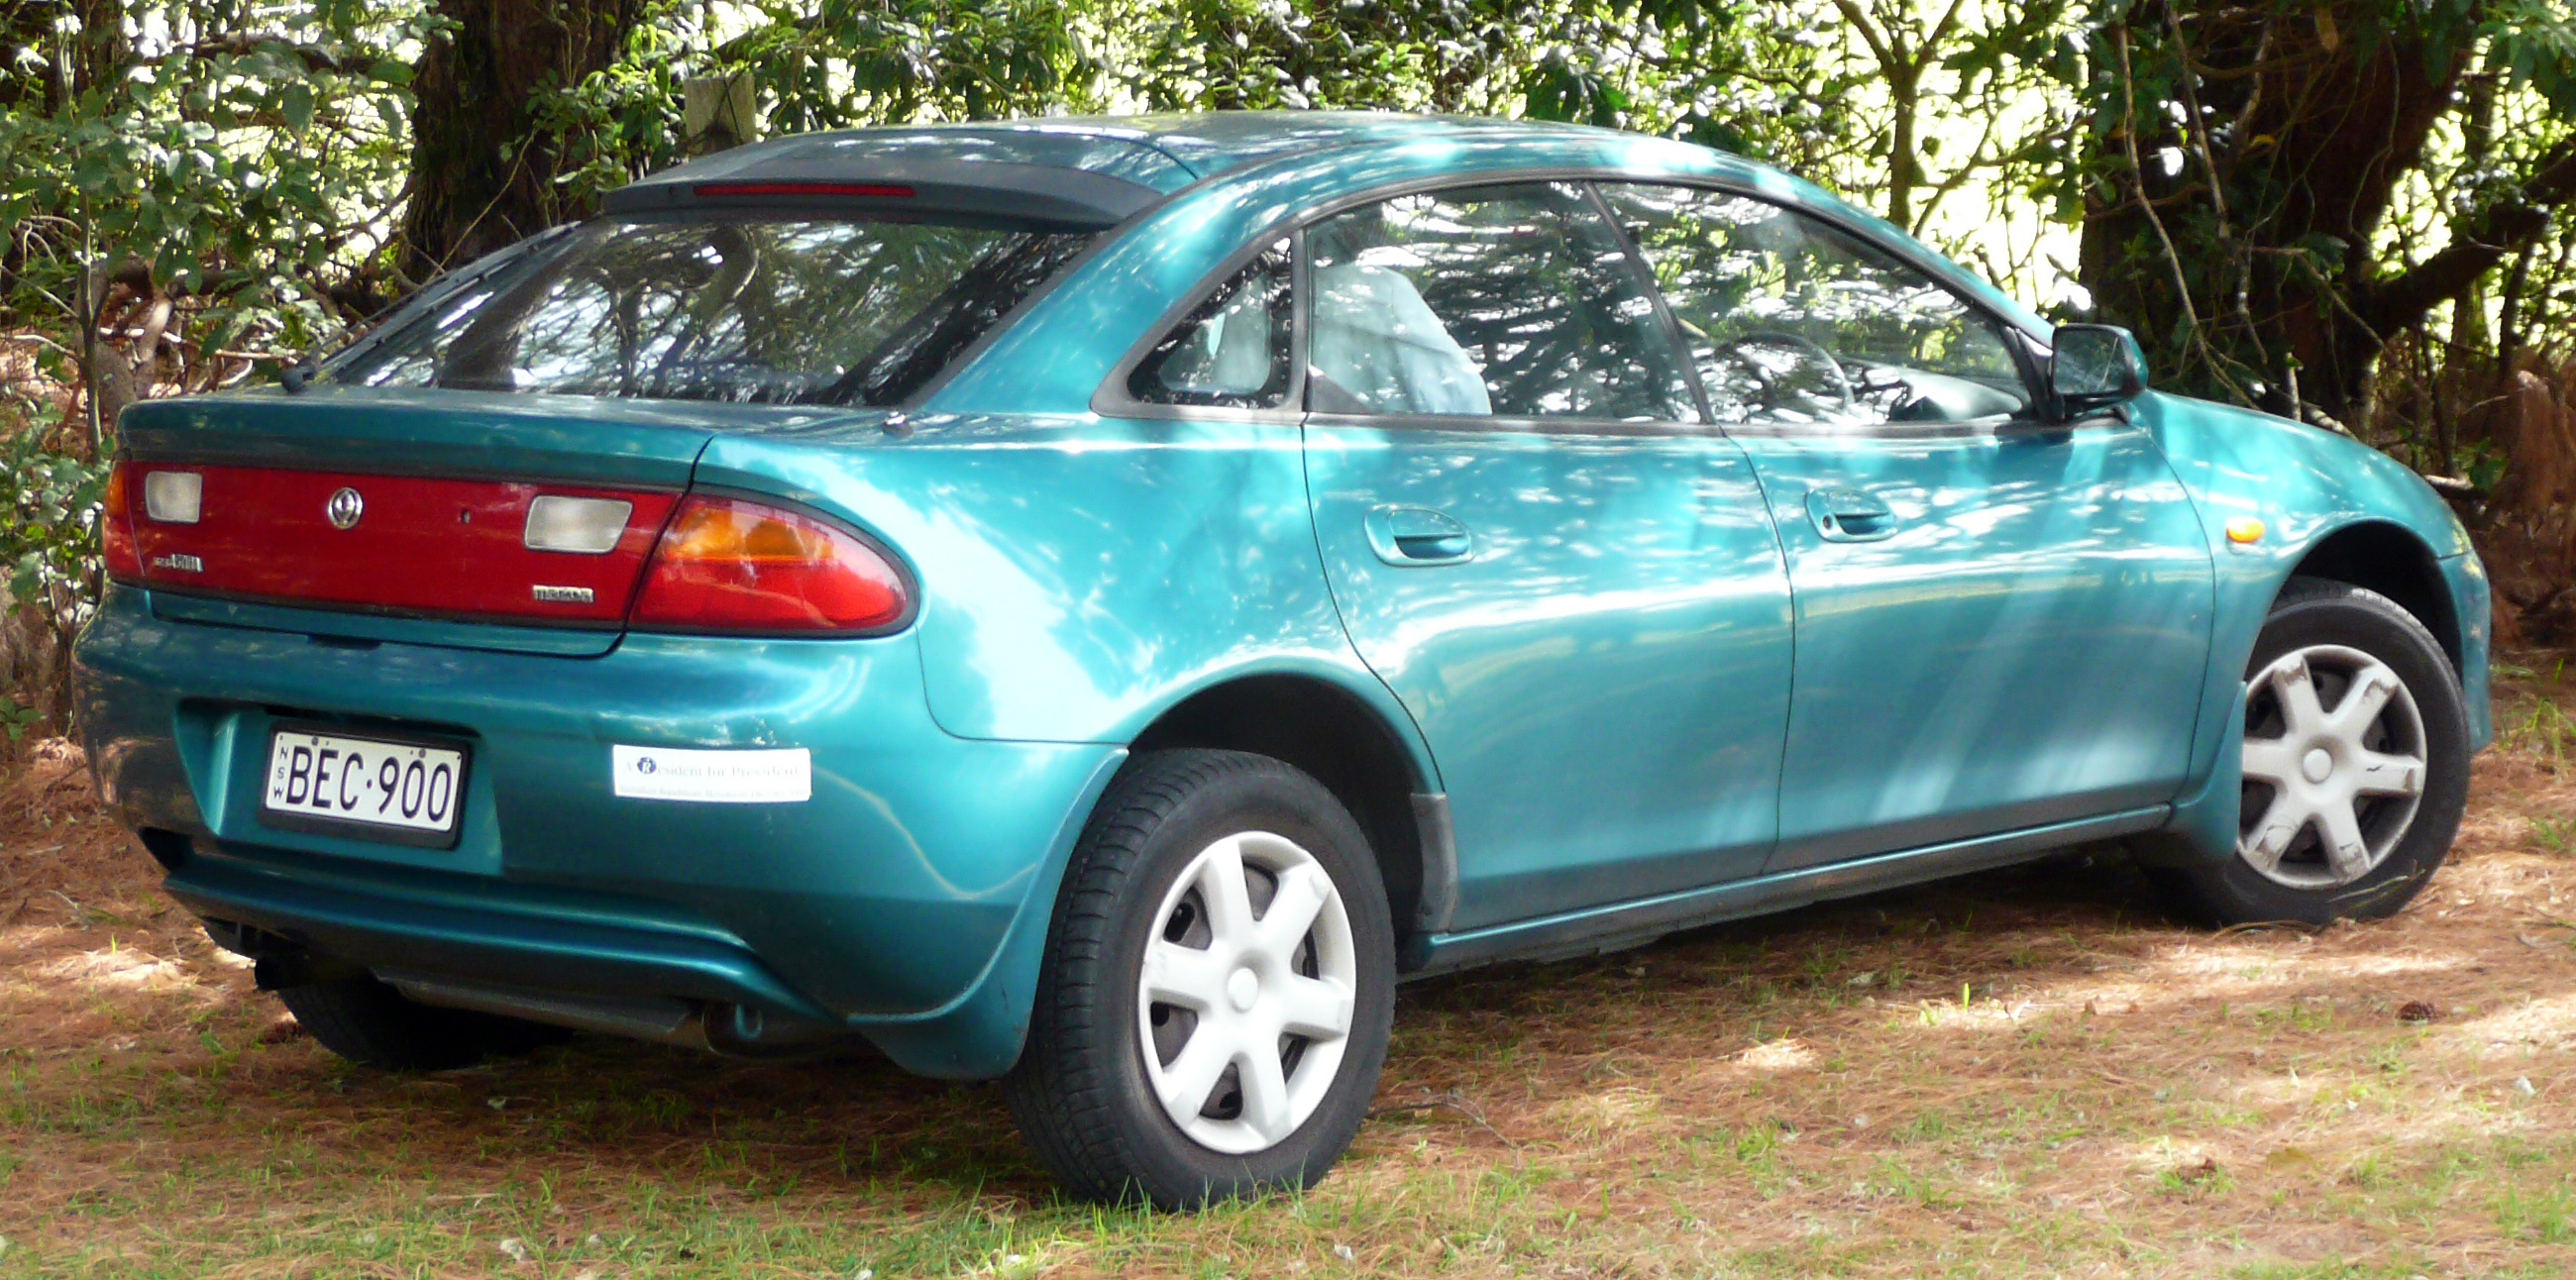 mazda astina wikipedia with File 1997 Mazda 323  Ba Series 3  Astina 5 Door Hatchback 01 on File 2003 Mazda 323  BJ II  Astina Shades 5 Door hatchback 01 additionally File mazda 323 hatch front moreover Images together with File 1st Ford Festiva furthermore File Mazda 323f rear 20071002.